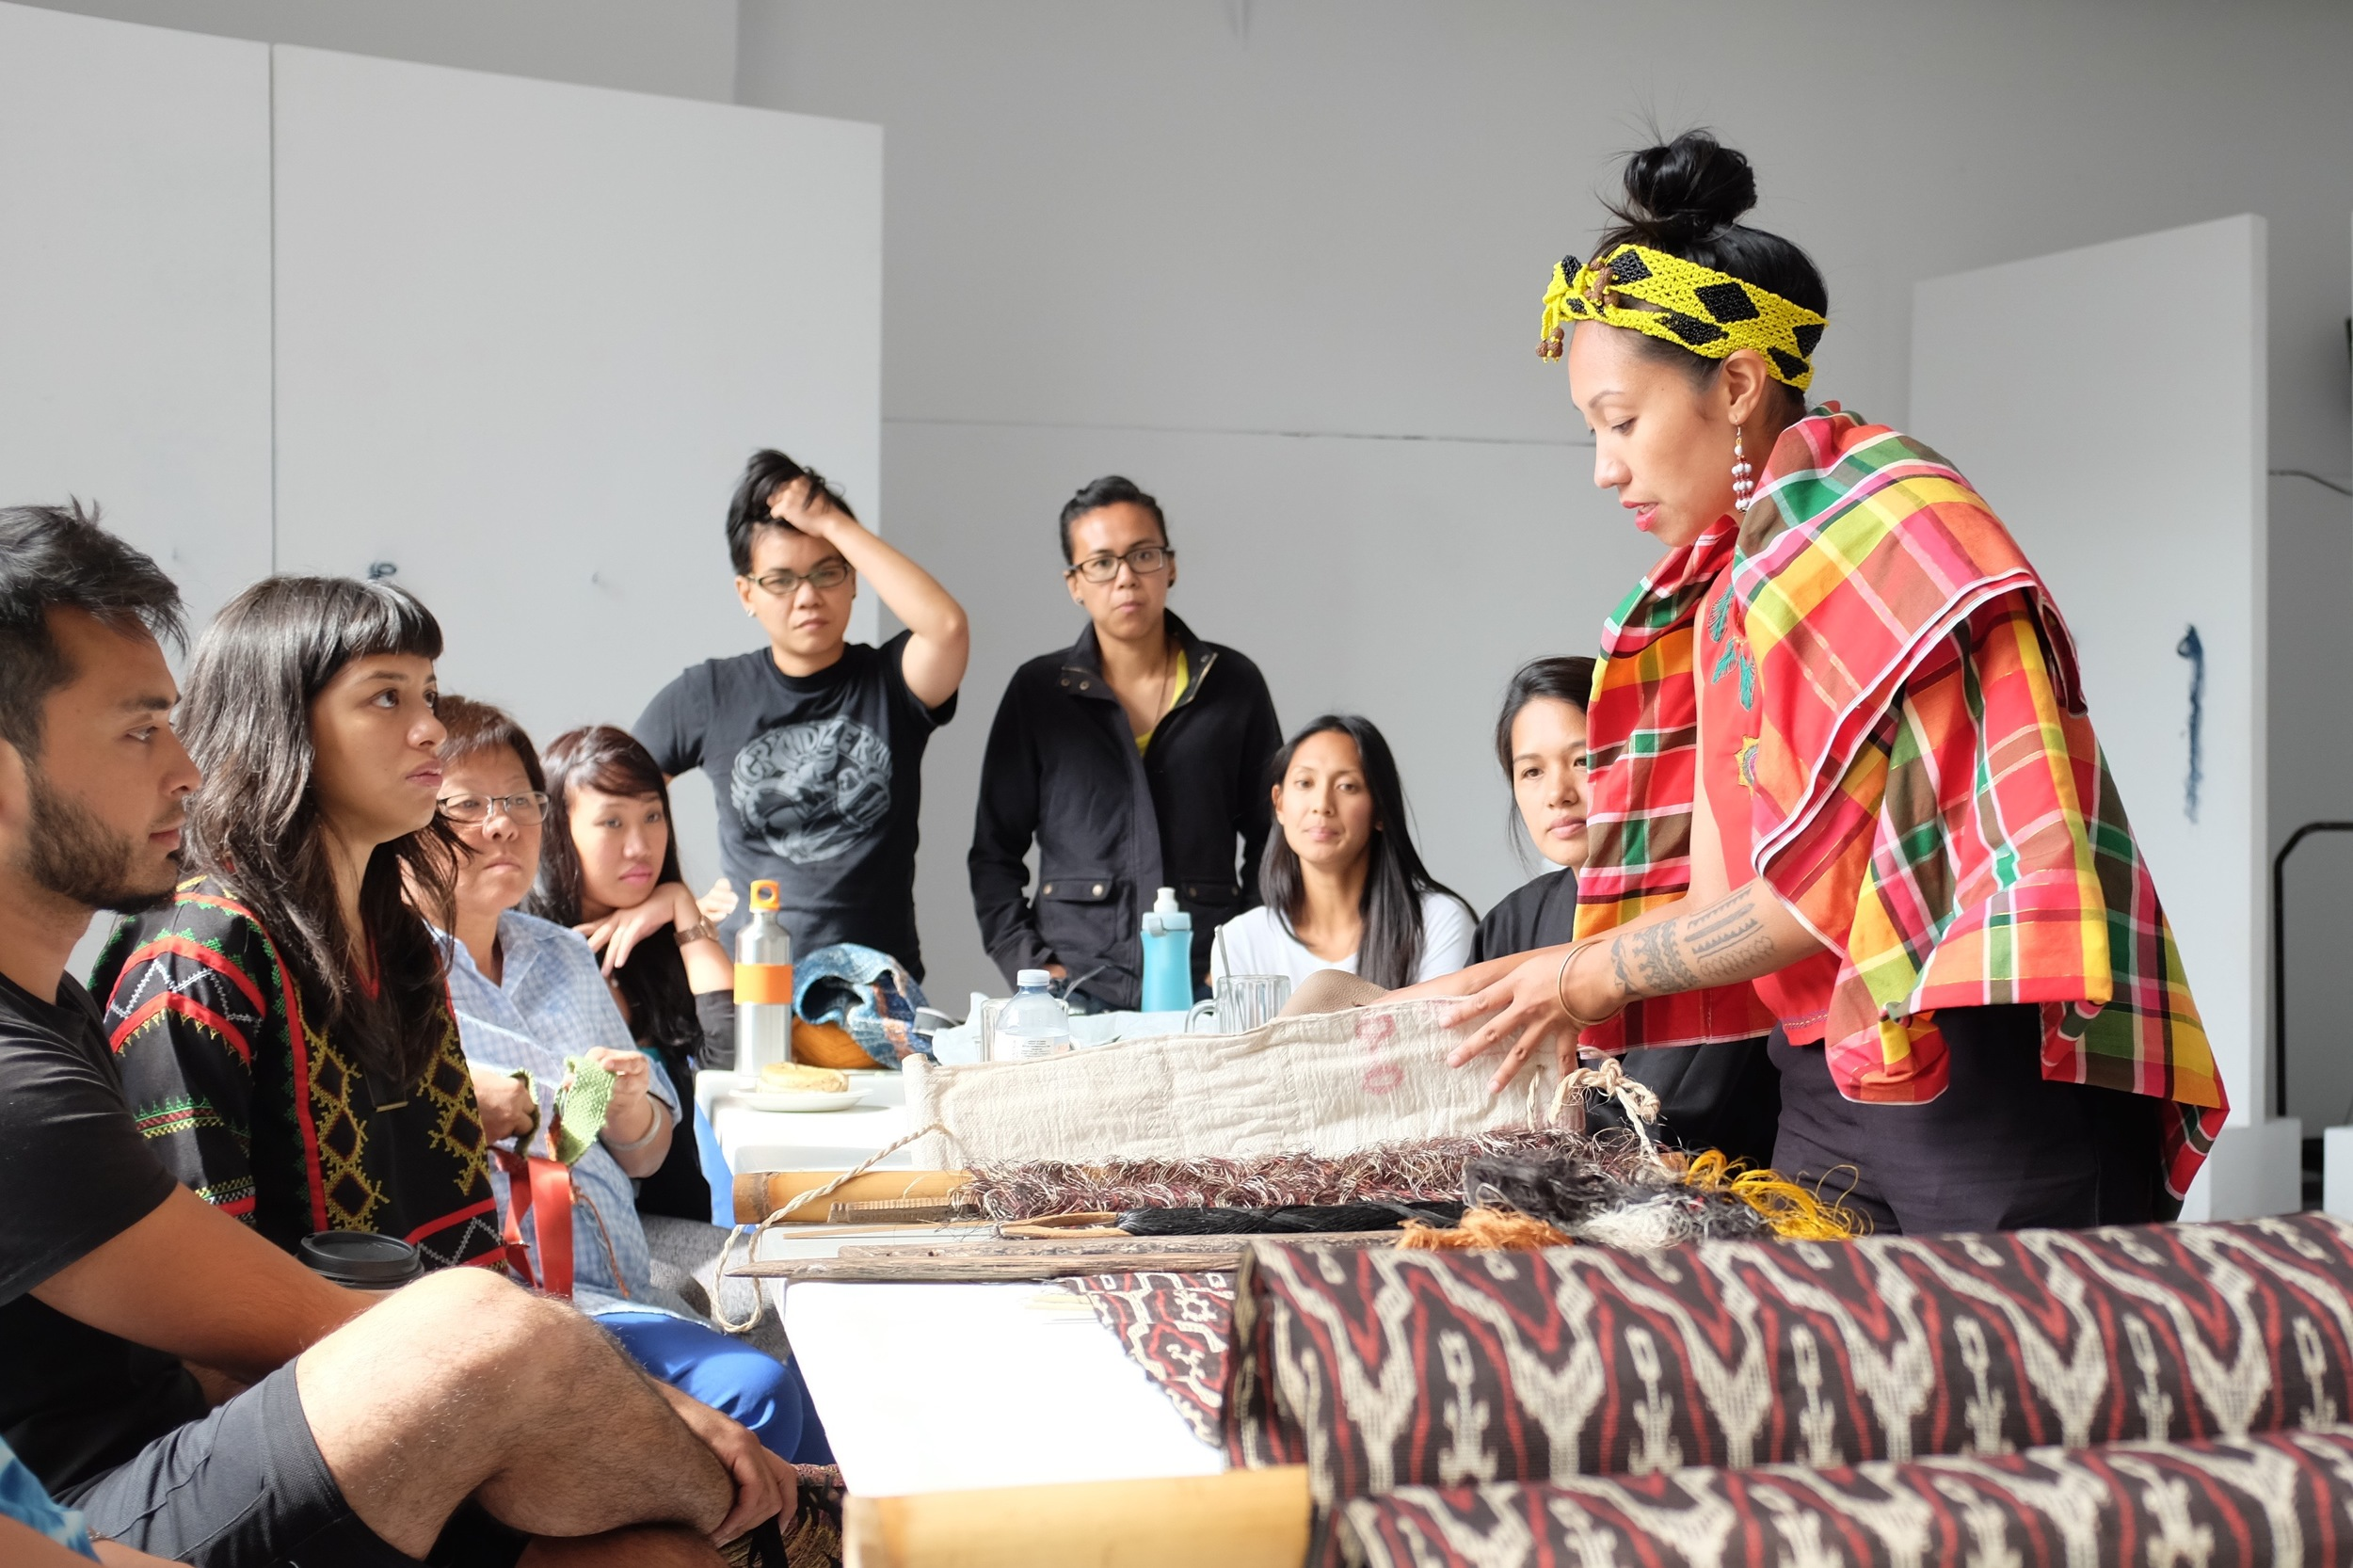 Jennifer Maramba teaching about the T'nalak, a T'boli textile. Photo by J. Austria